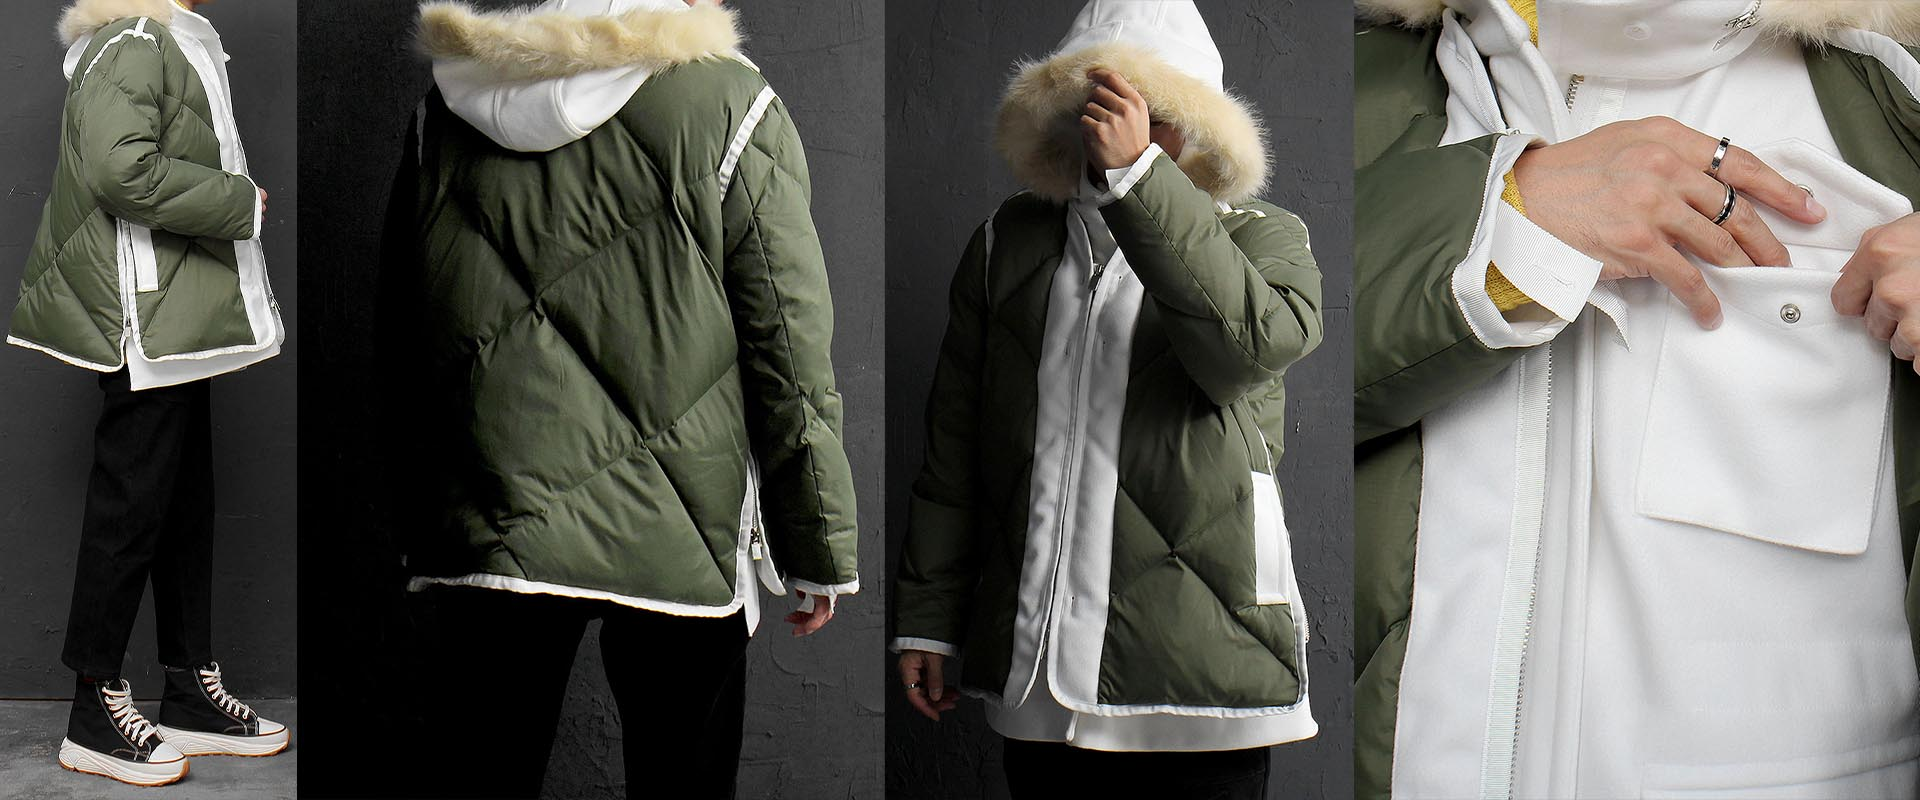 Double Layered Jacket Duck Down Zip Up Puffa Jacket 774